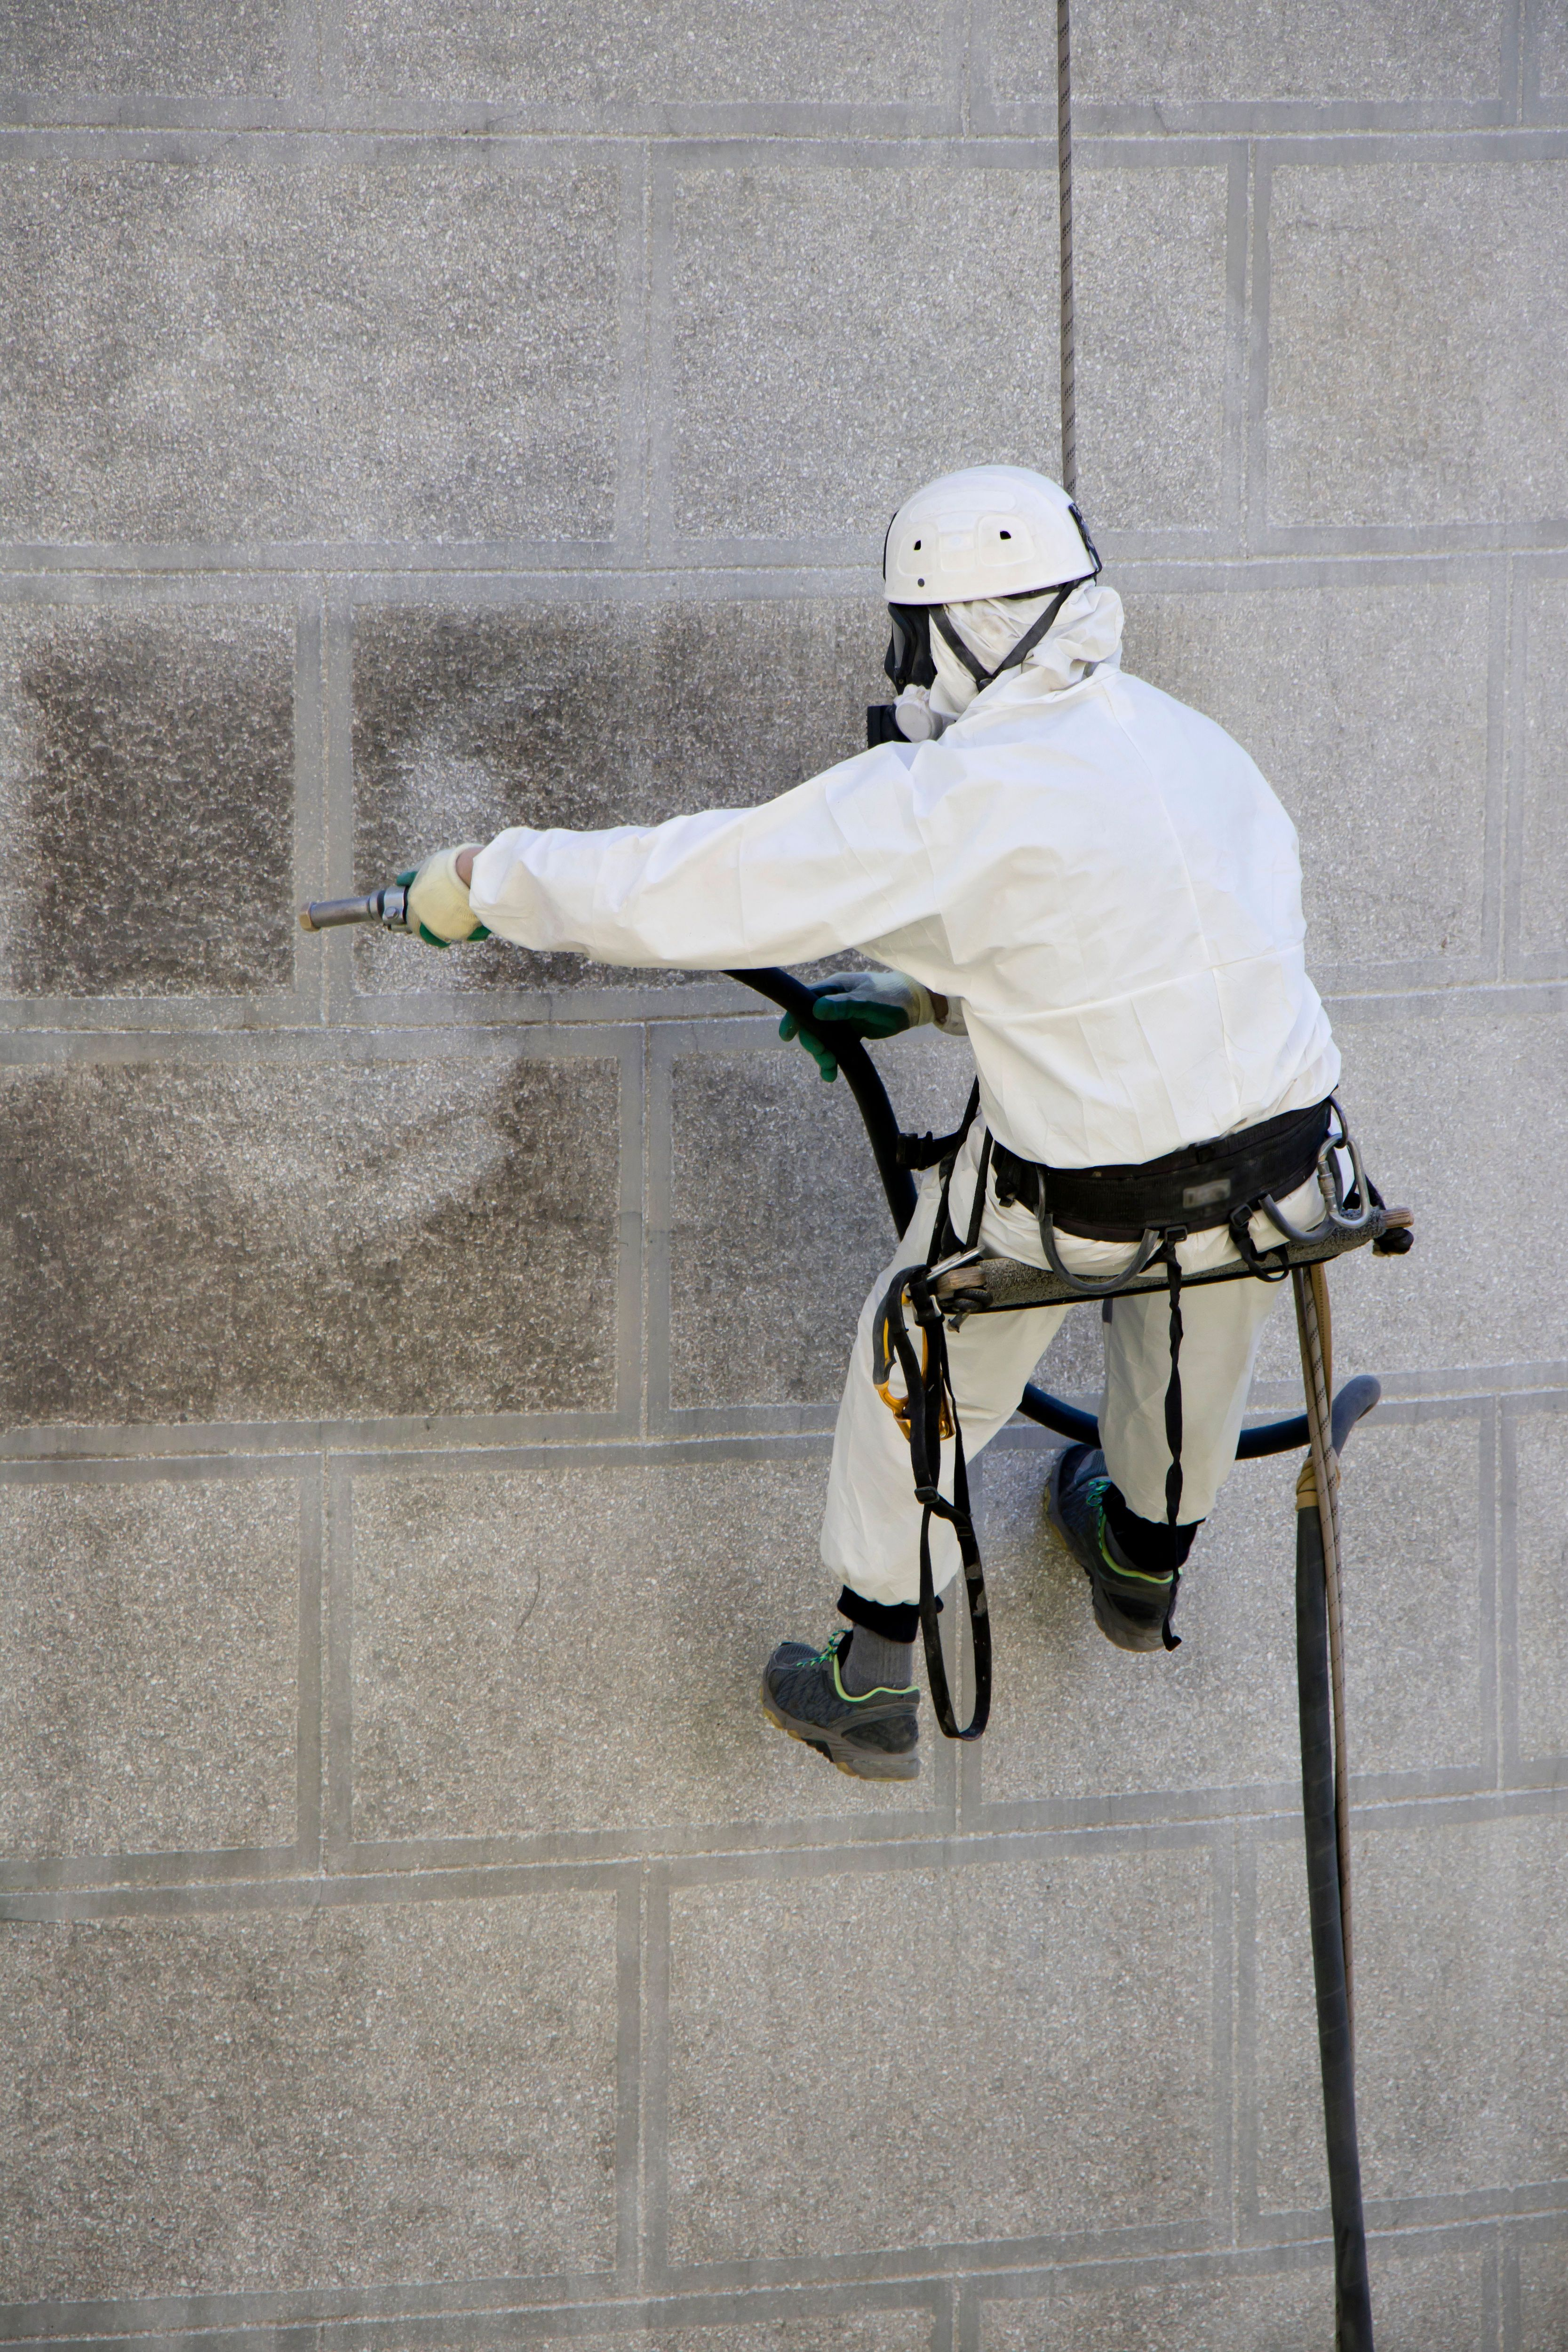 Commercial cleaning services Montreal Donnacona, Service